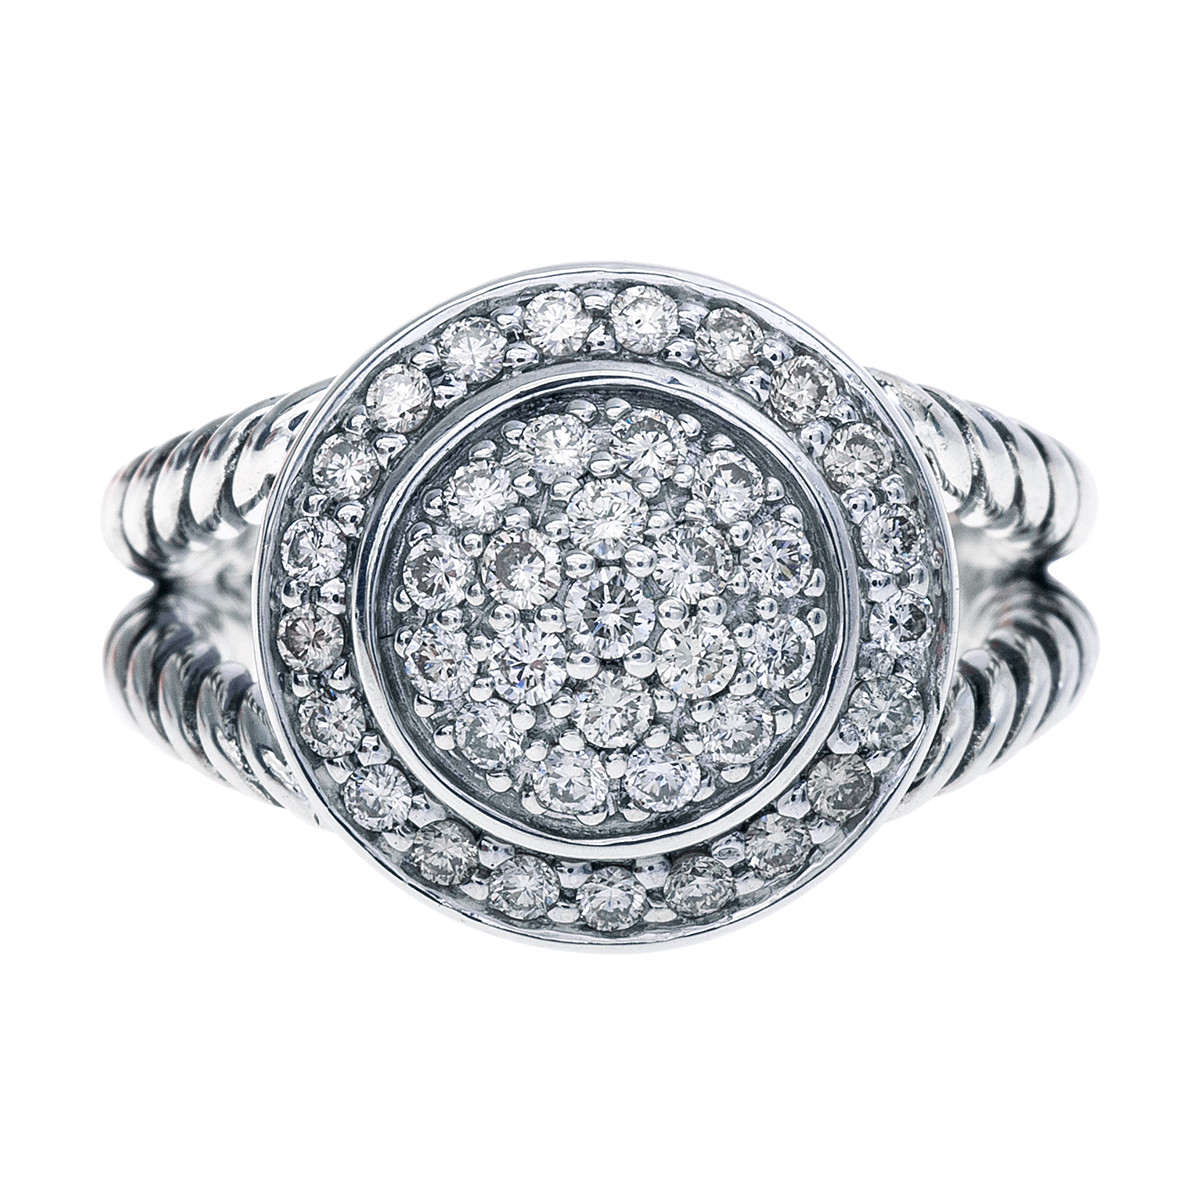 pin diamonds ring albion diamond david petite with and yurman